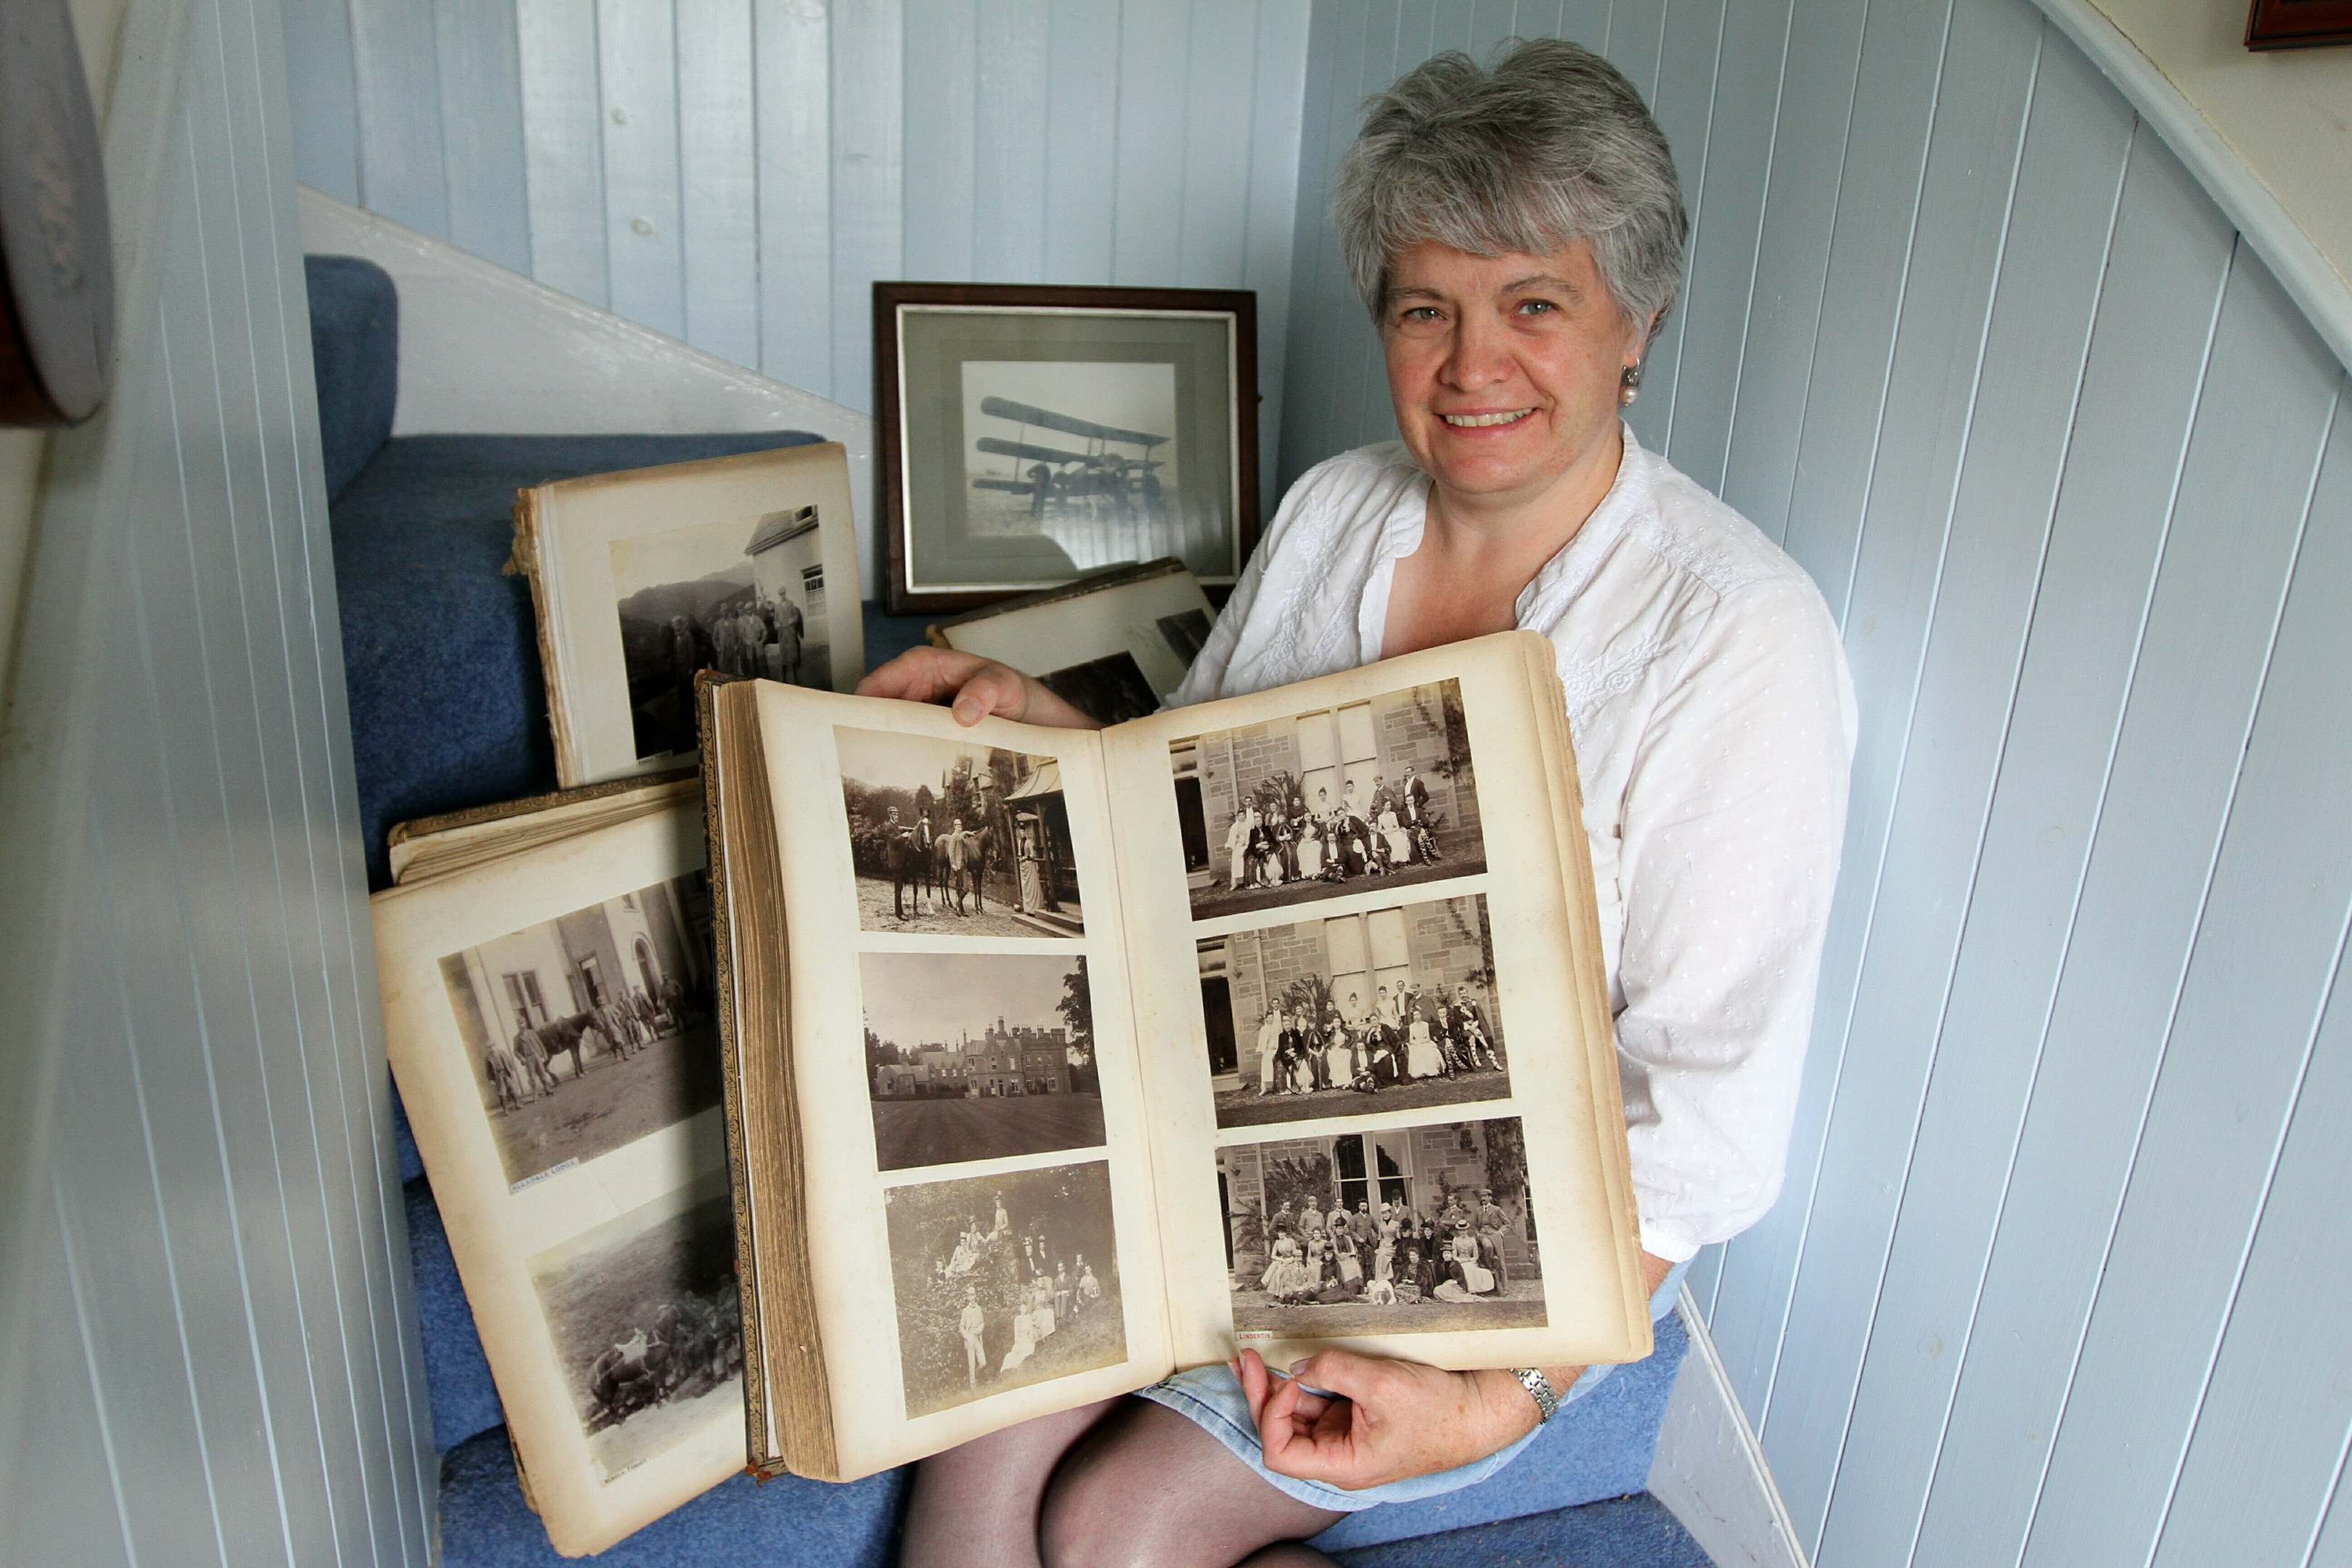 Rare pictures from the 1880s to 1890s were handed to Hilary Farquharson of Turt near Tannadice by a woman in England